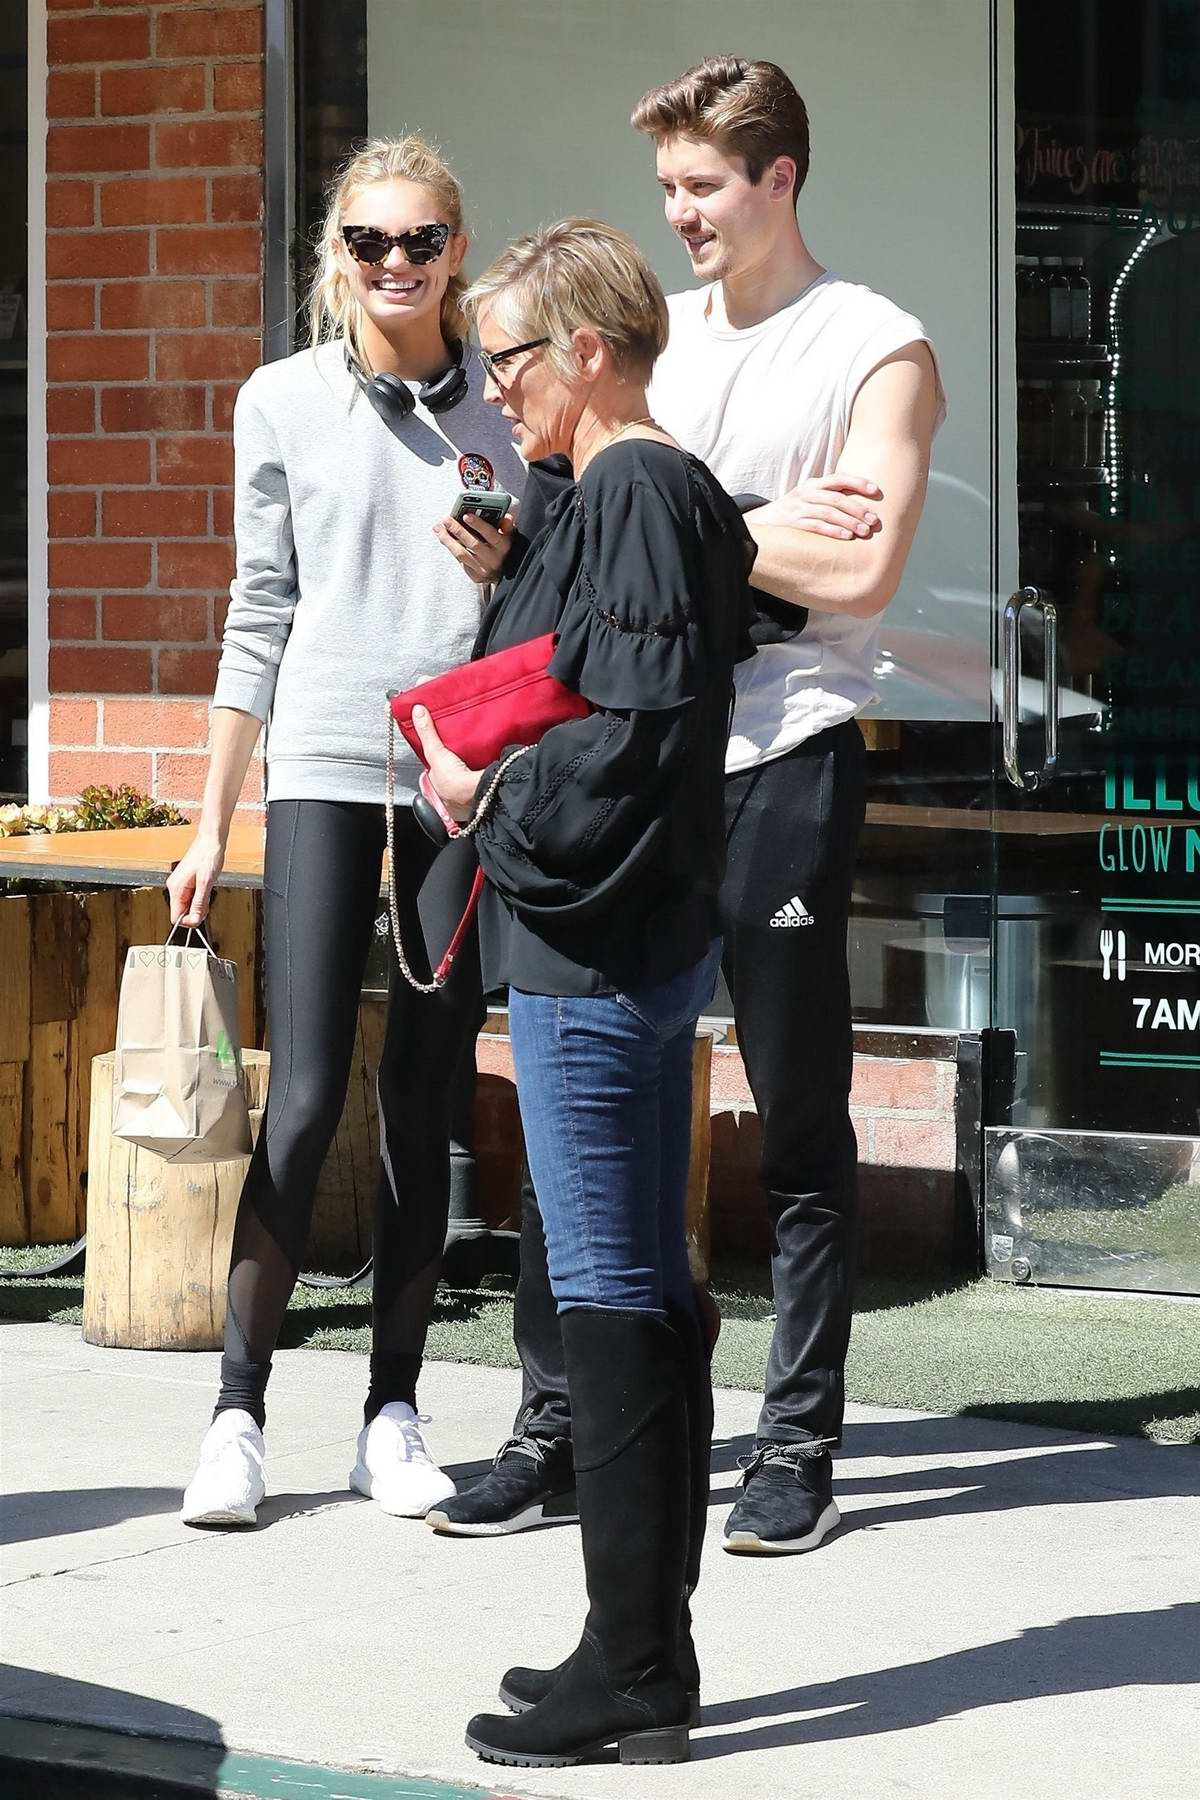 Romee Strijd and Sharon Stone run into each other while grabbing lunch at California Pizza Kitchen in Beverly Hills, Los Angeles